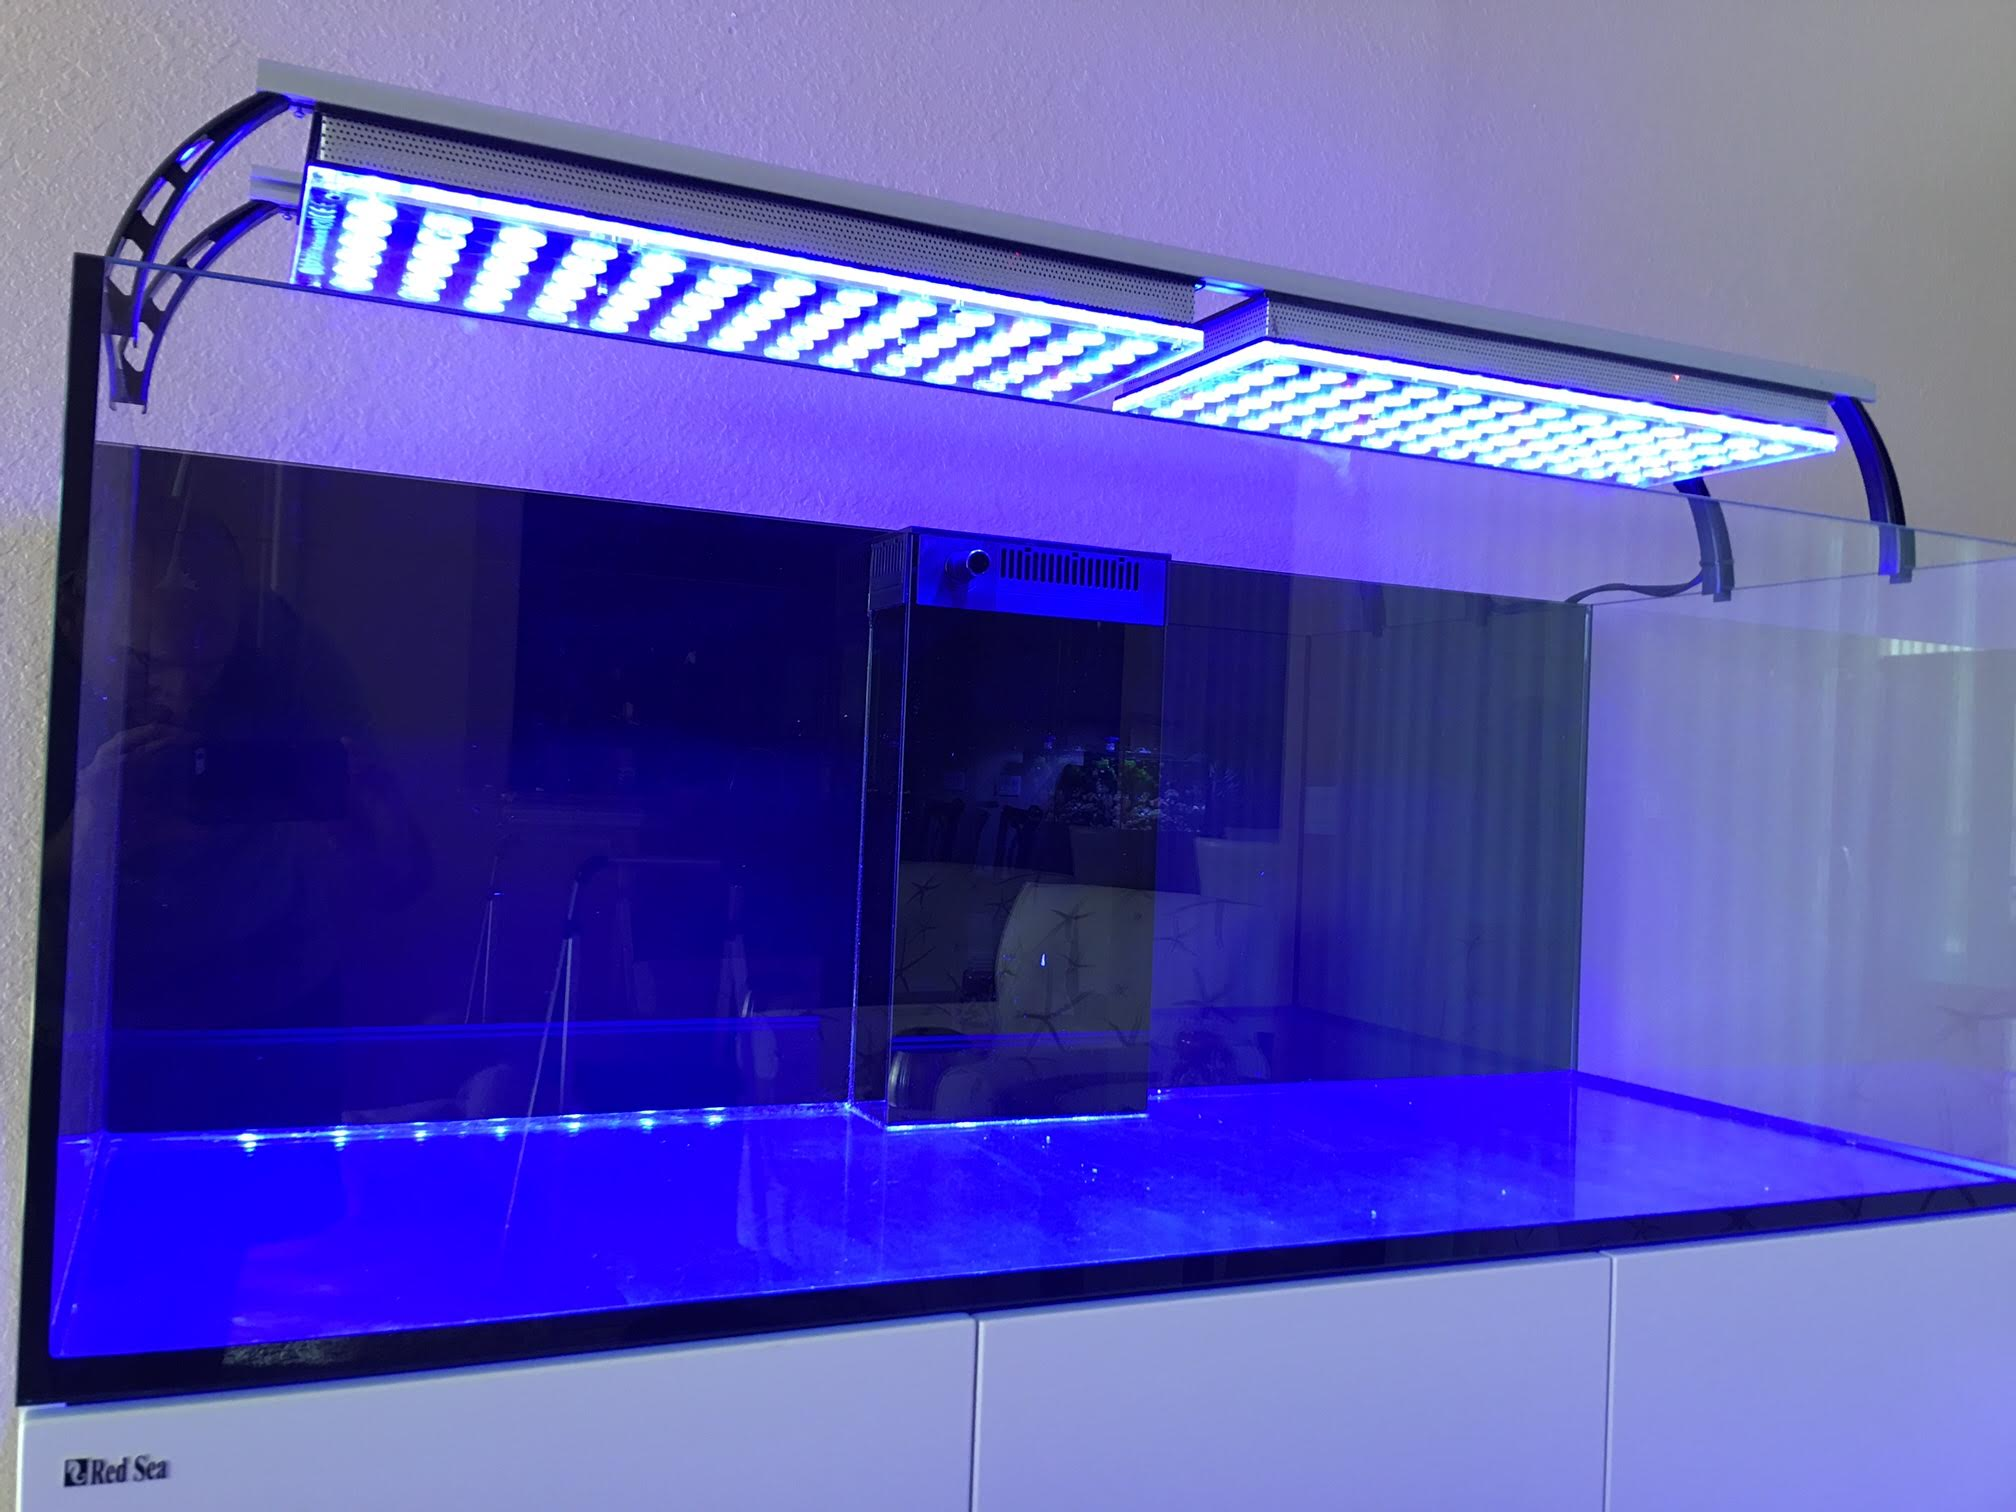 atlantik serie auswahl der richtigen led aquarium beleuchtung aquarium led beleuchtung orphek. Black Bedroom Furniture Sets. Home Design Ideas